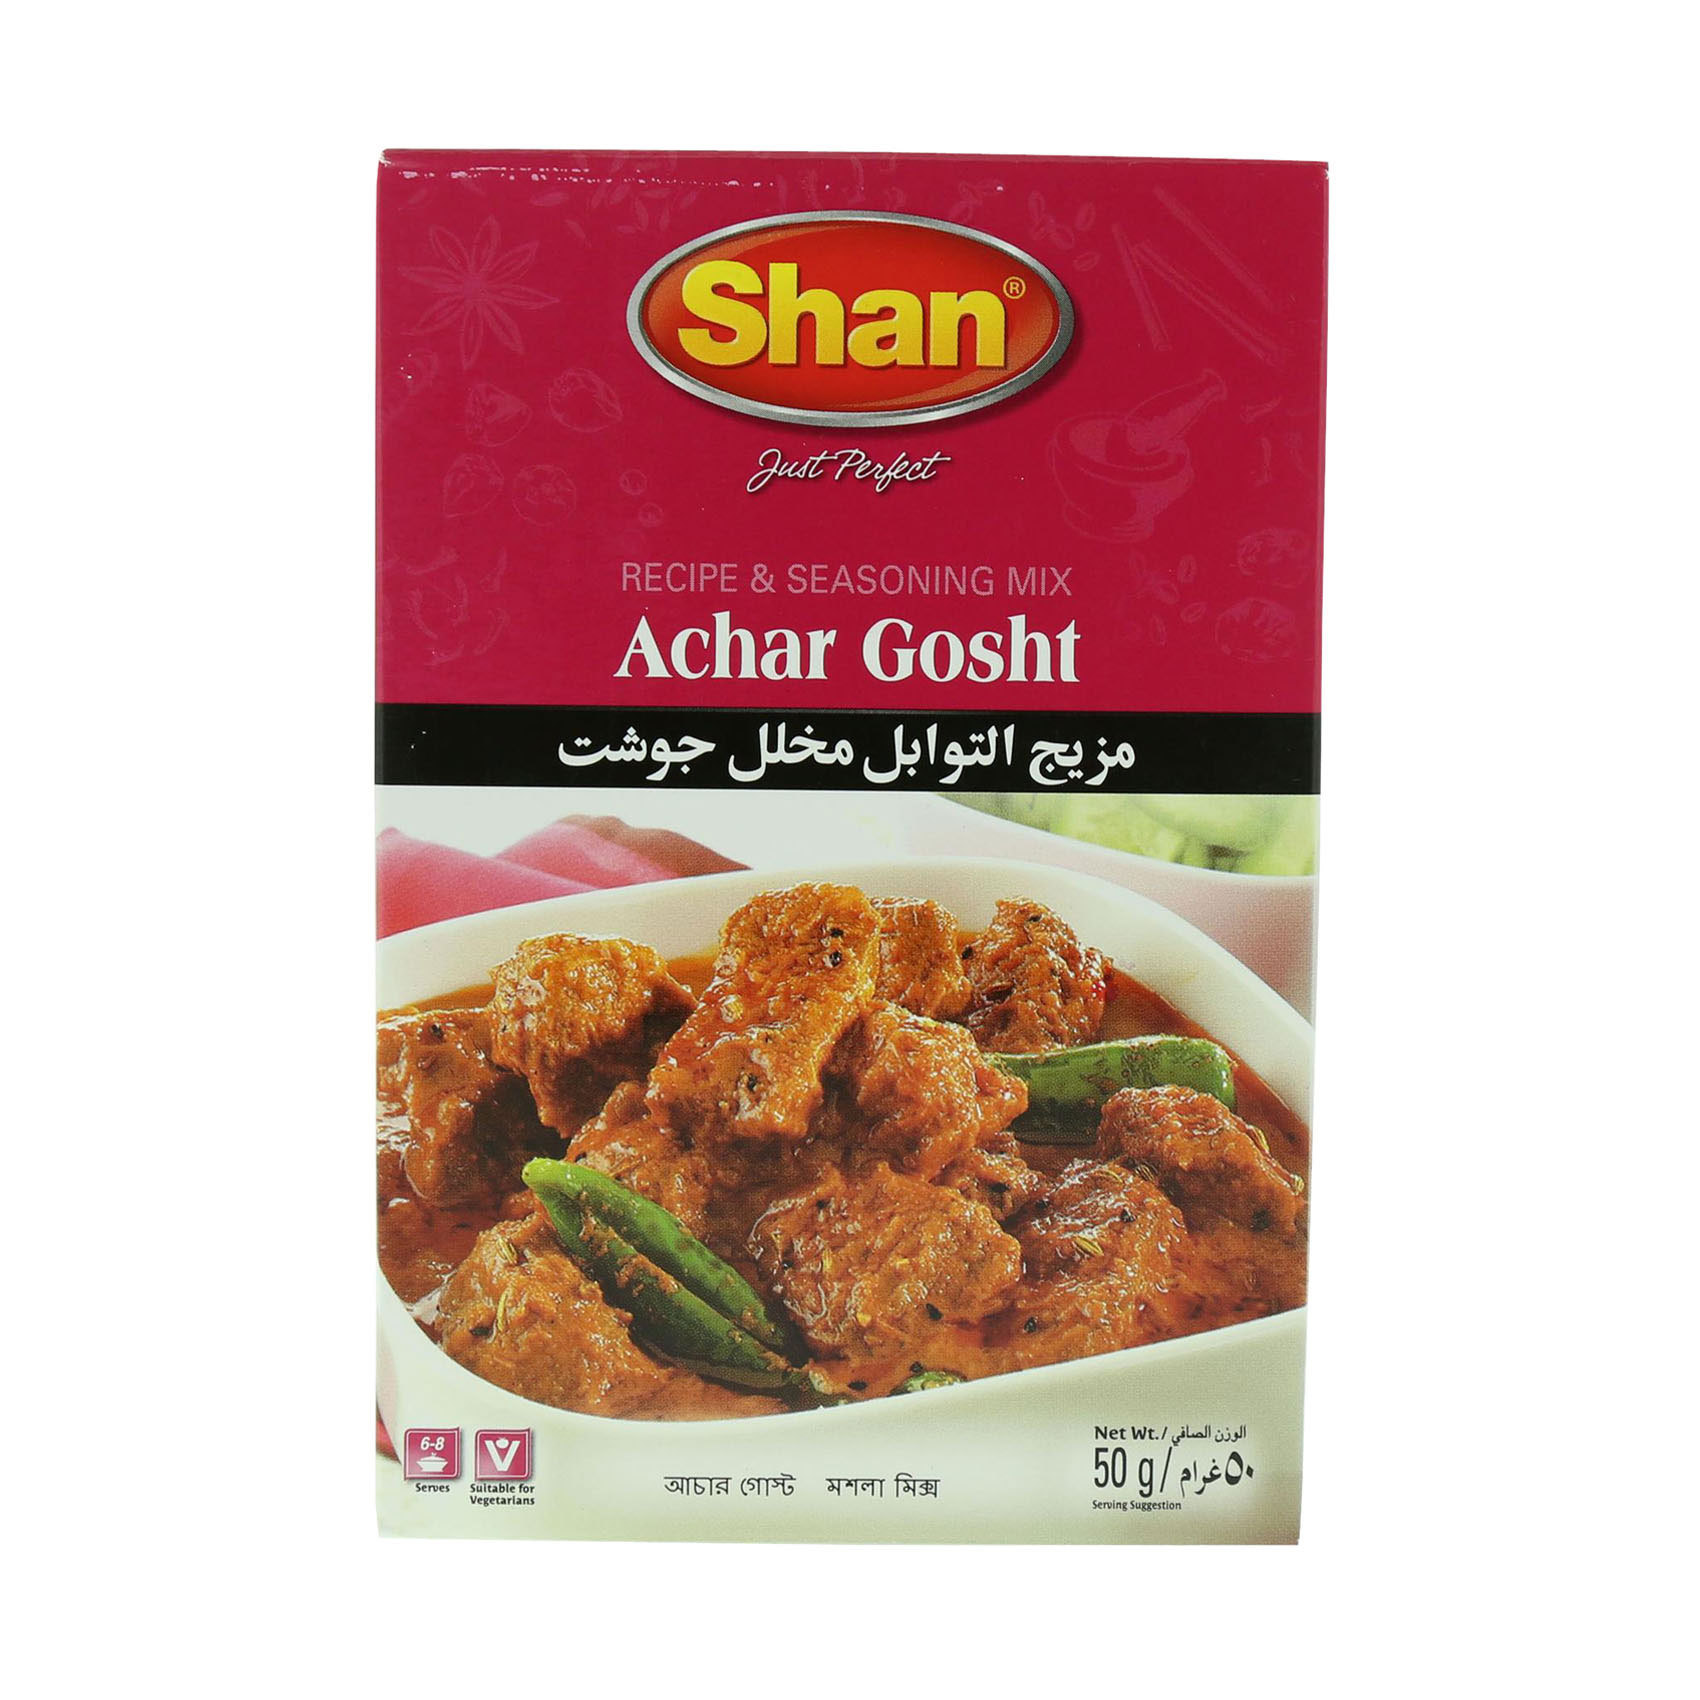 SHAN MACHAR GOSHT CURRY MIX 50G